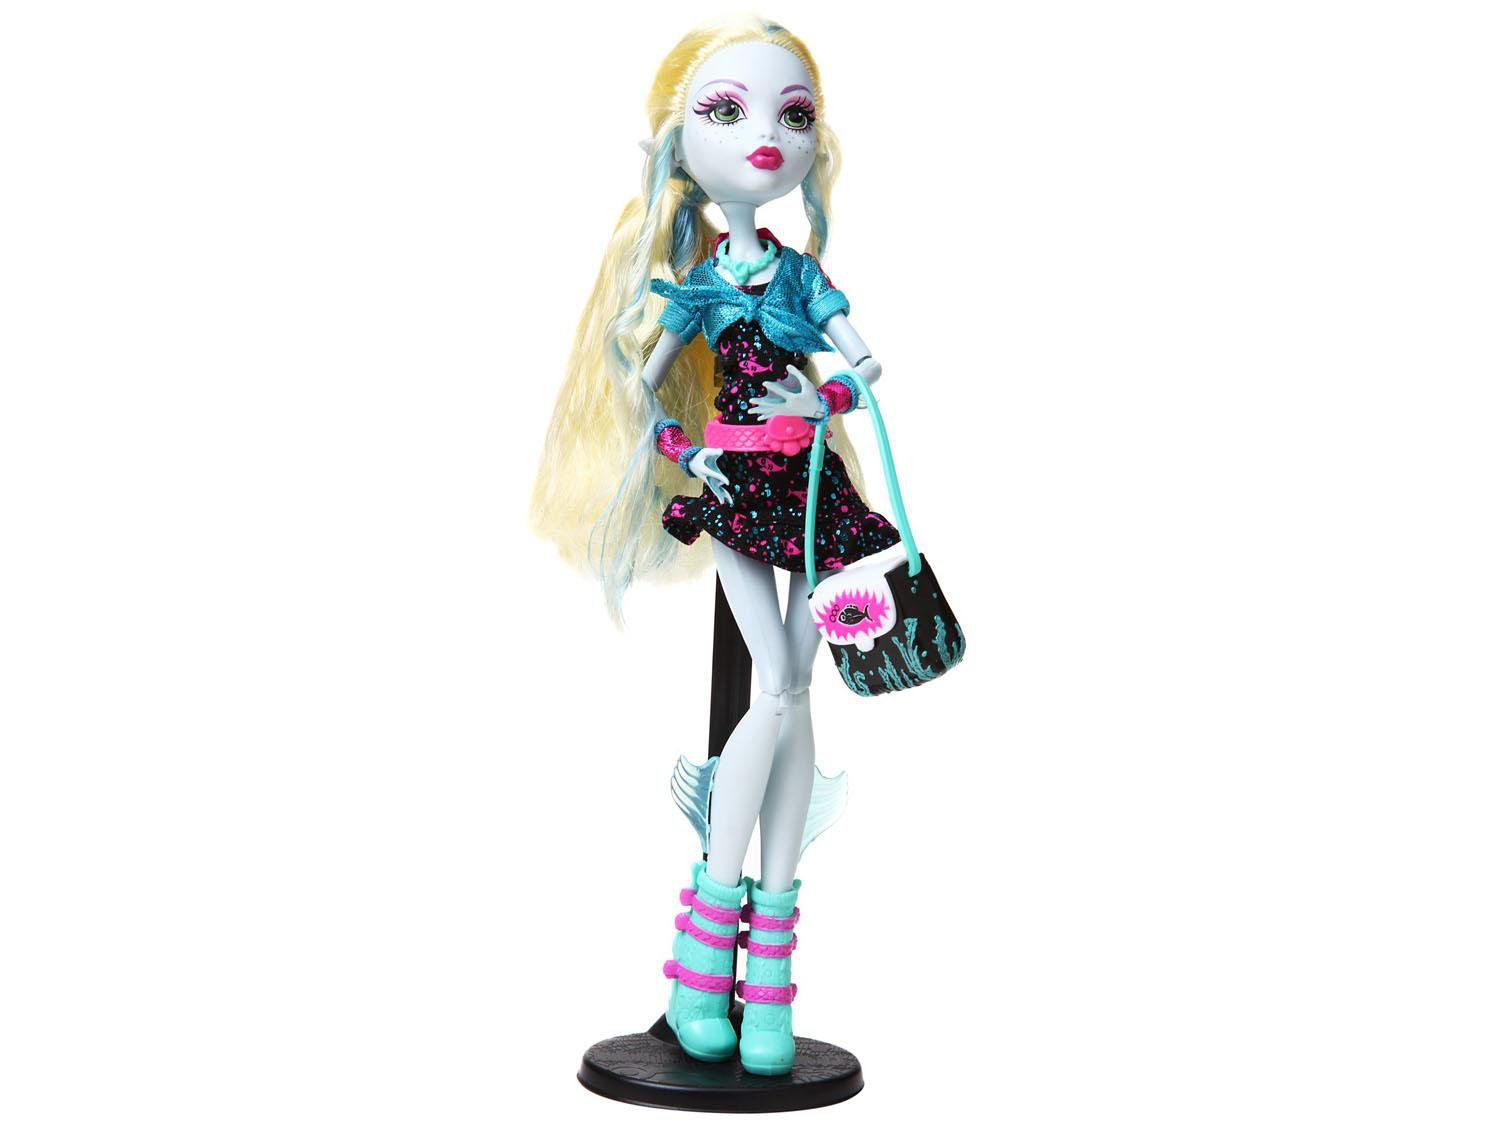 Product description. Monster High Toralei Stripe Doll: The ghouls from Monster High are freakishly fabulous. The kids from Monster High are the coolest ghouls in school with their fashions, accessories and scary cute pets.